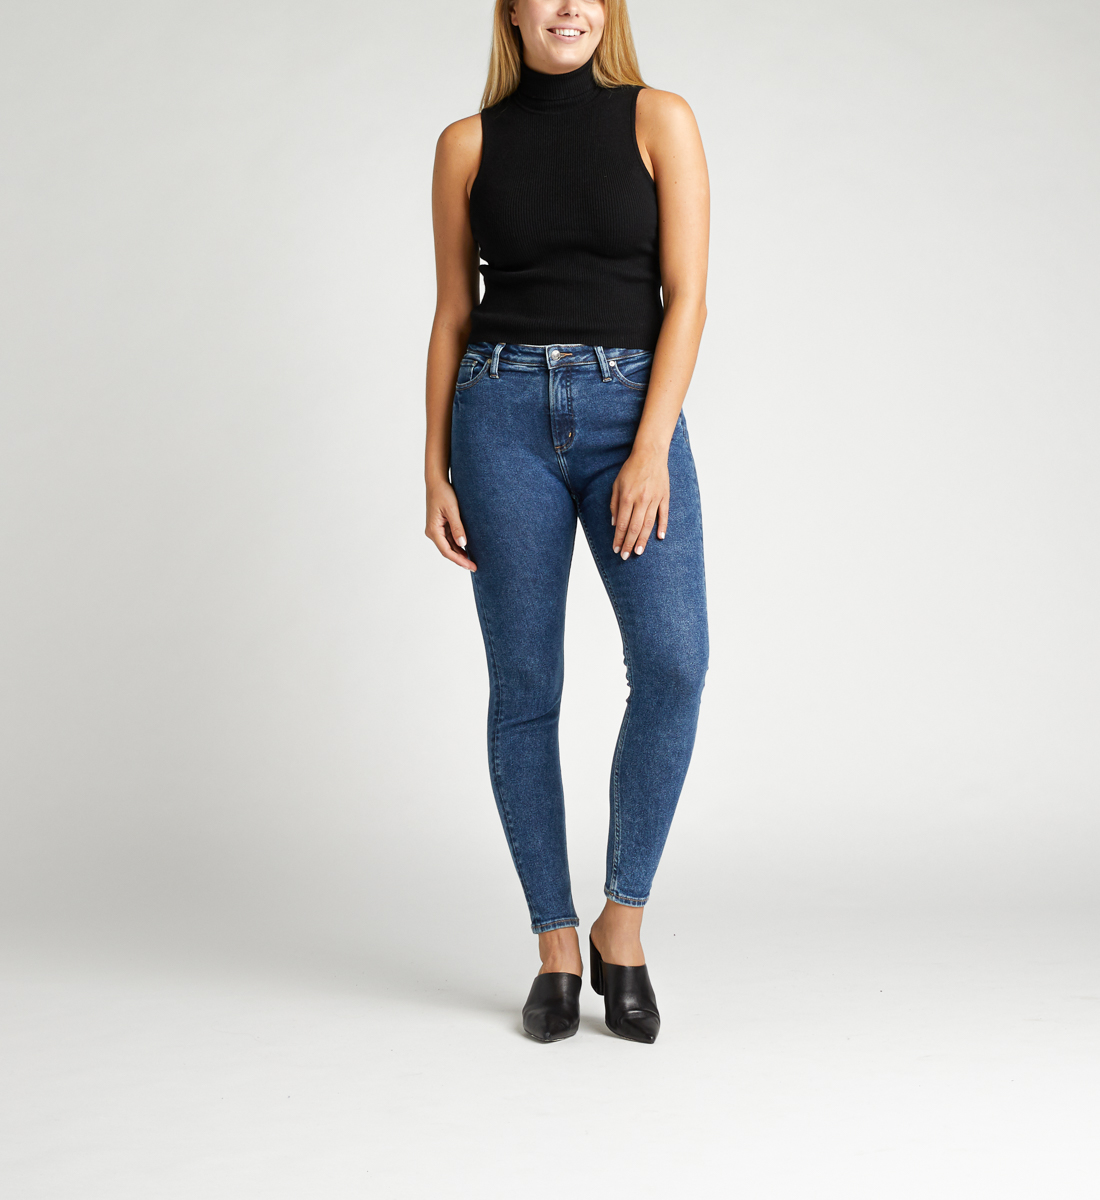 Silver Jeans High Note High Rise Skinny Jeans